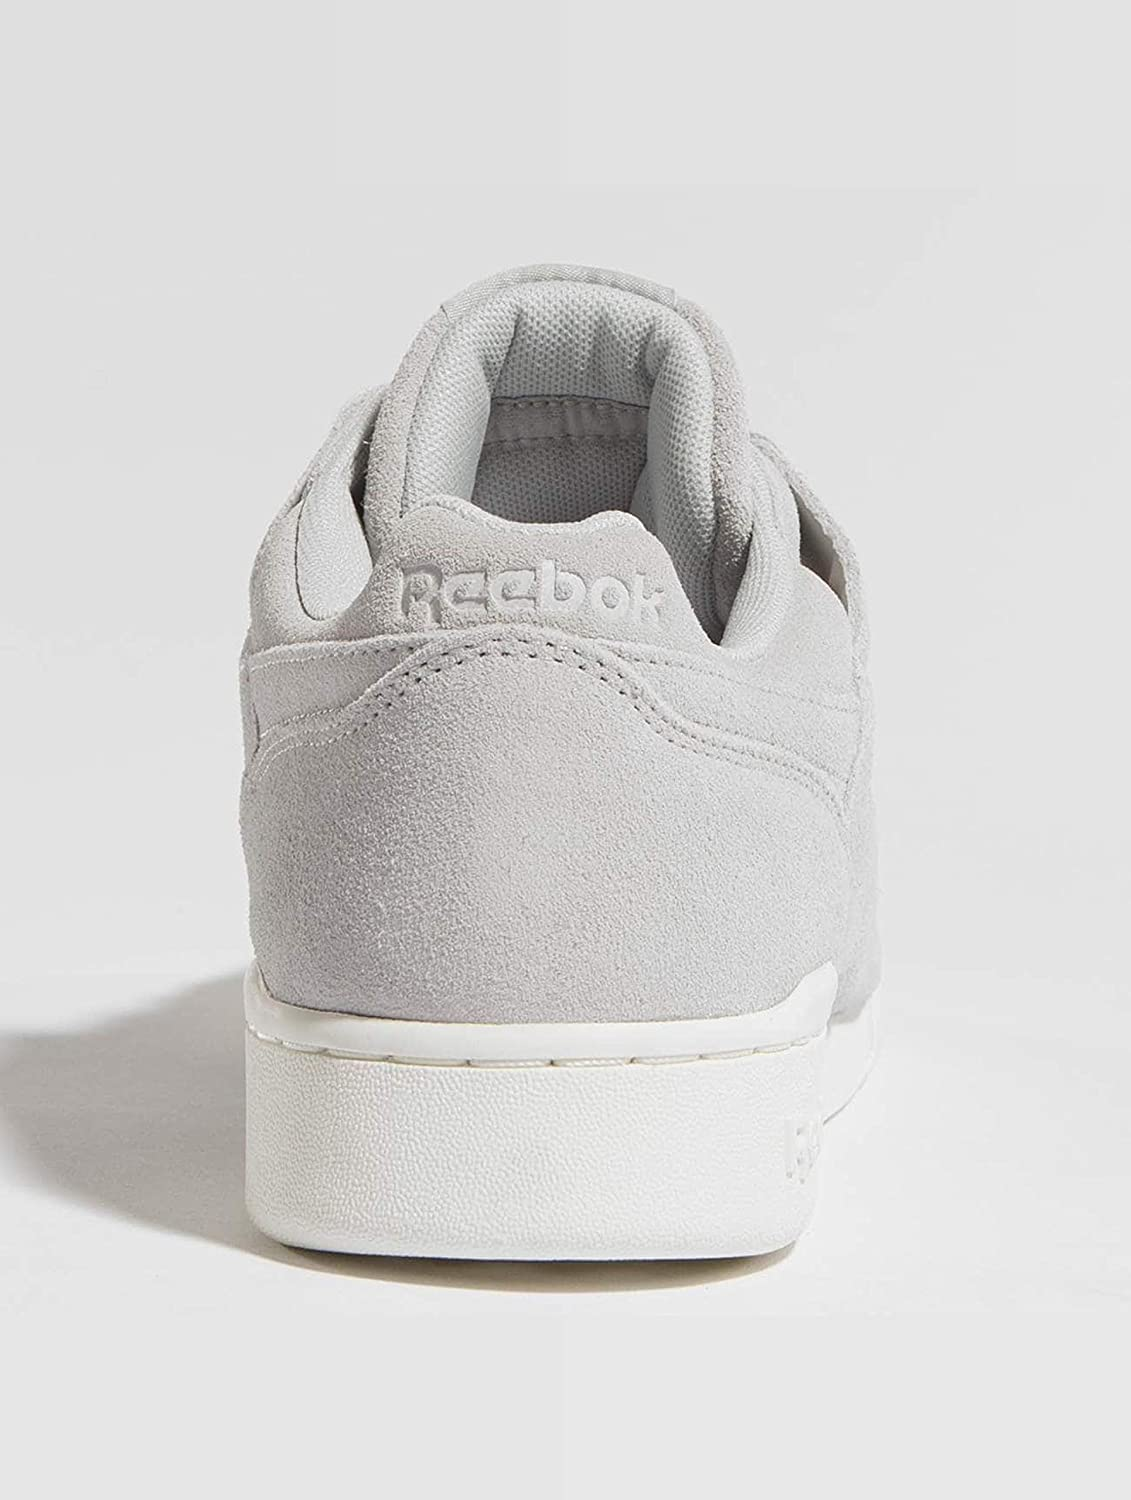 Reebok Workout Plus Montana Cans Cans Cans Collaboration Herren Turnschuhe Grau  d800eb